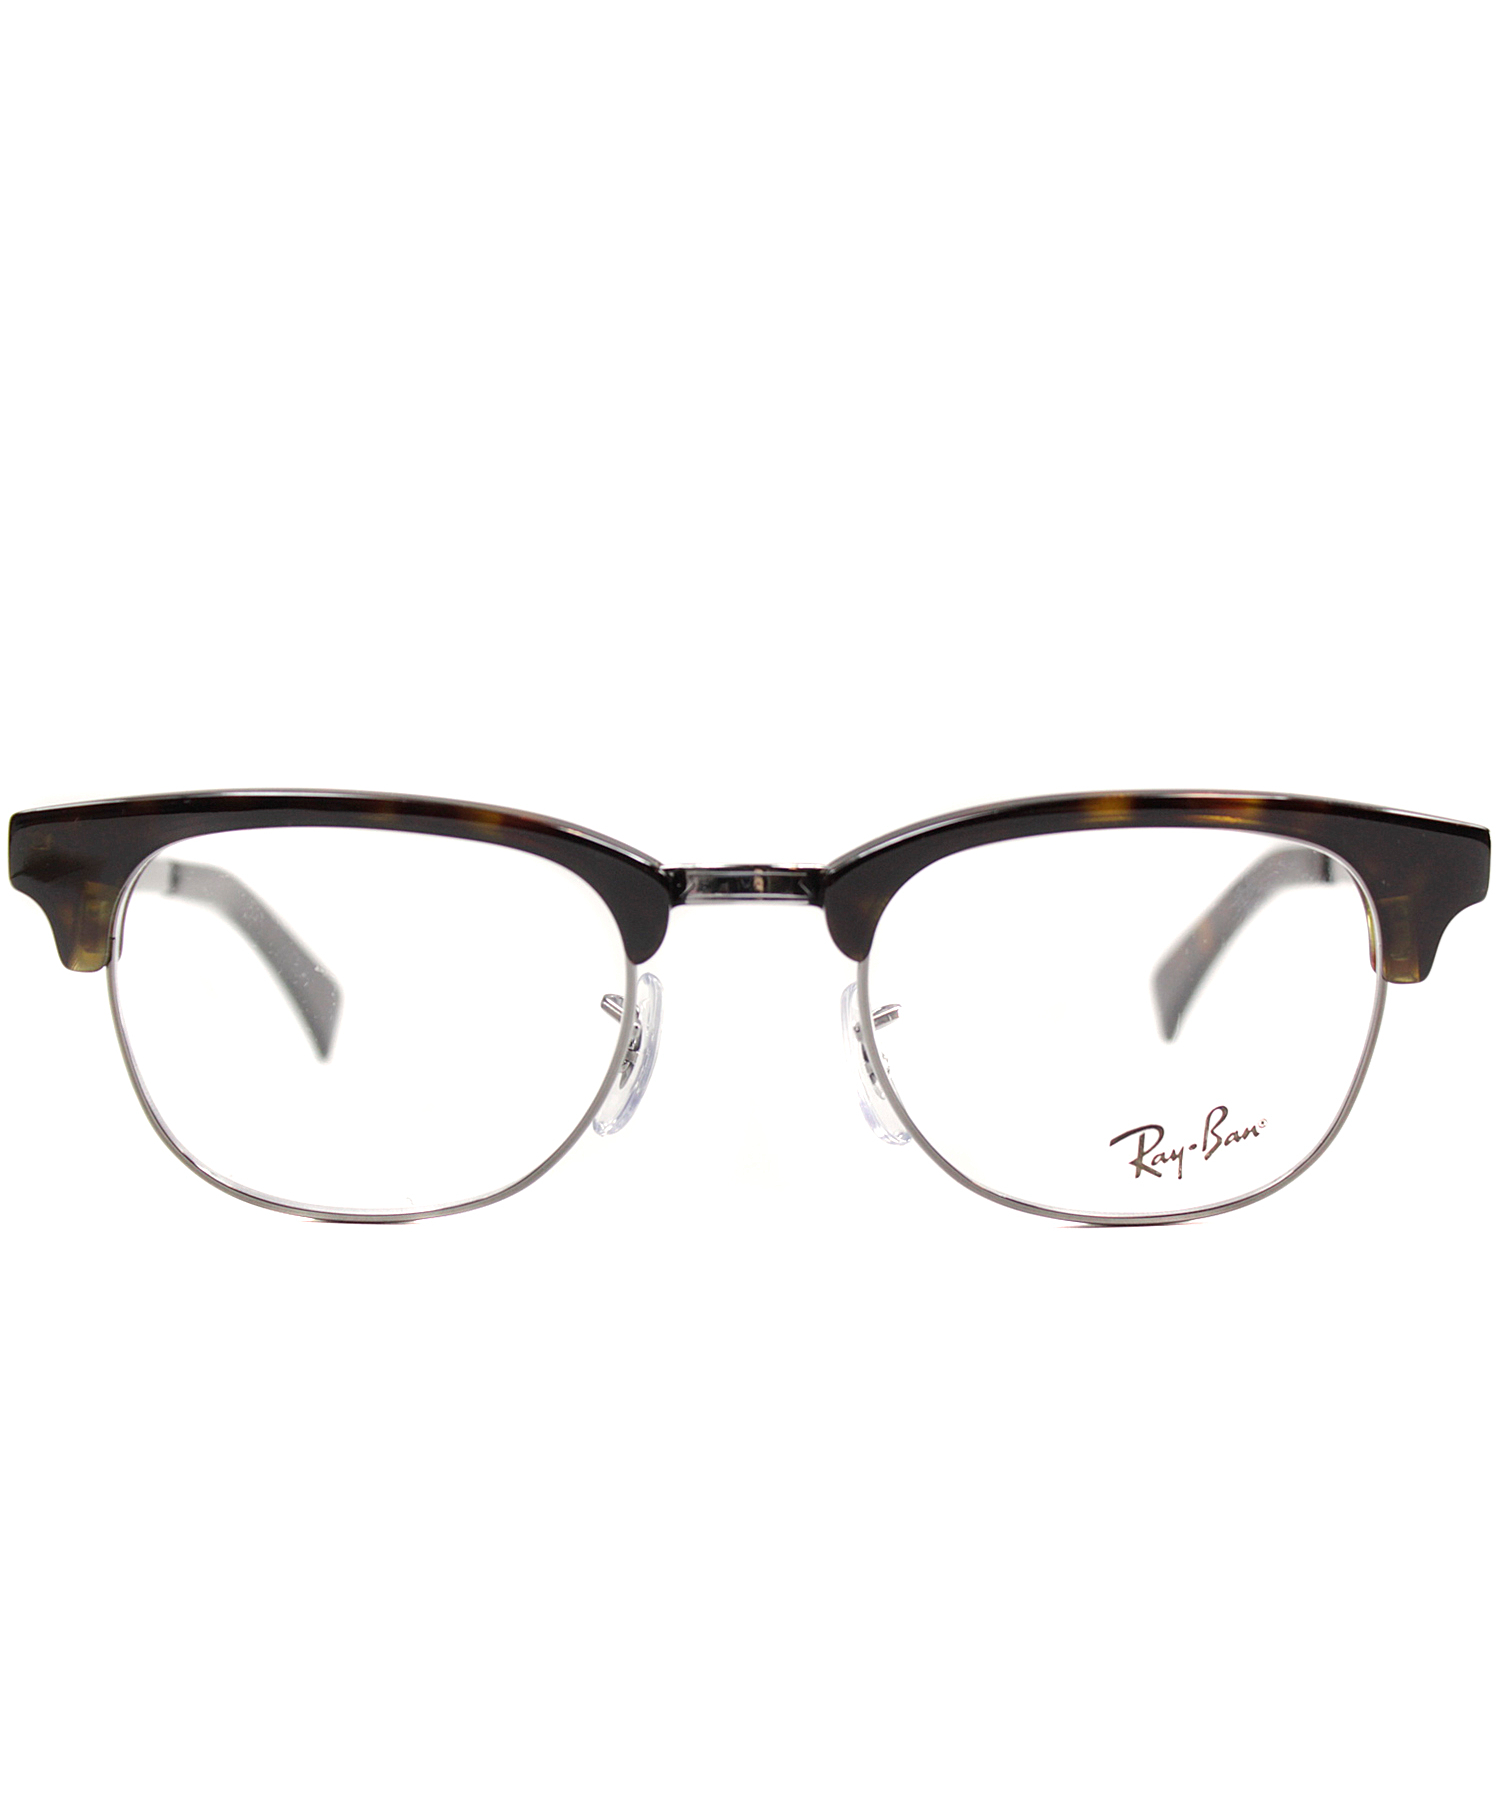 Ray Ban Clubmaster Glasses Frames : Ray-ban Clubmaster Plastic Eyeglasses in Metallic Lyst